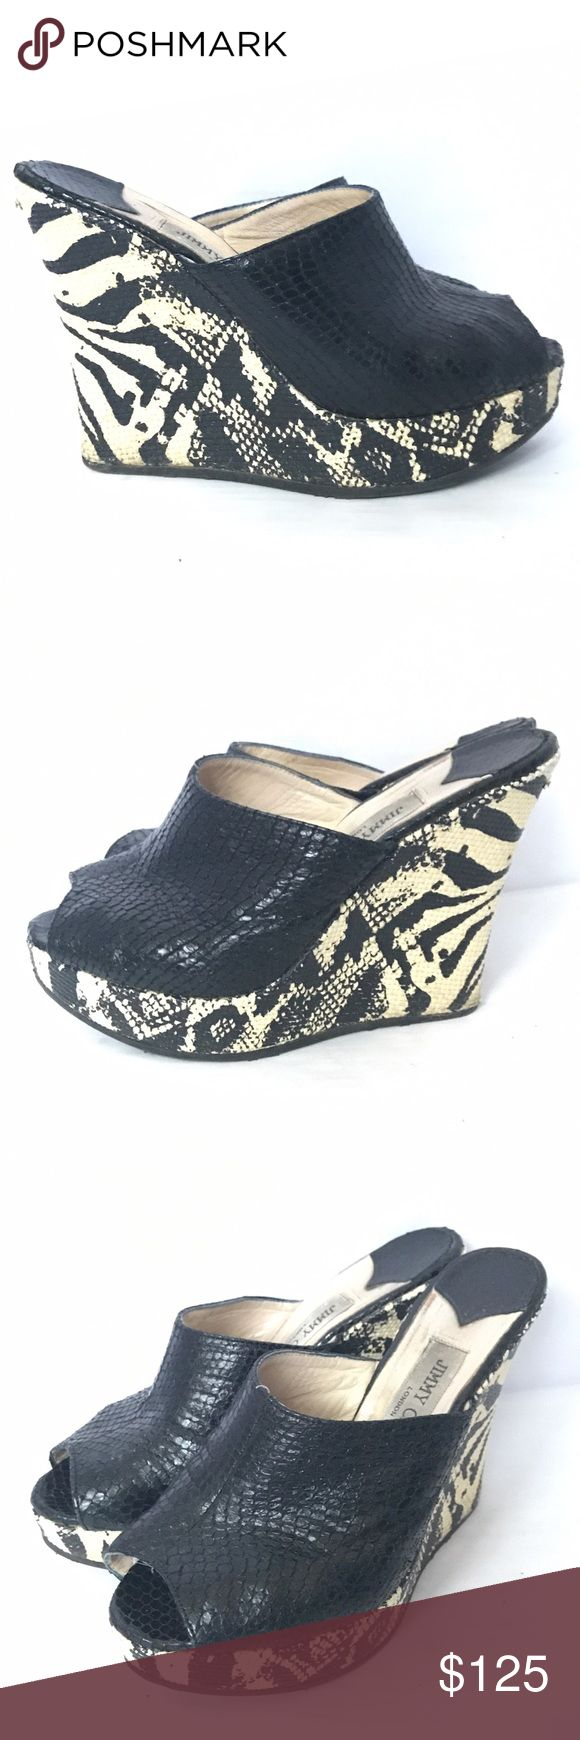 Jimmy Choo Snakeskin Wedge Black Zebra Heels Jimmy Choo Snakeskin Embossed Wedge Mules Black Zebra Heels Size 38 . Wedge heel measures approximately 125mm/ 5 inches with a 25mm/ 1 inch platform. Jimmy Choo Black snake-effect leather, animal-print cream raffia. Gripped rubber sole. Designer color: Black Zebra. Size EU 38 US 8 . Shows some wear but still in very good condition. Jimmy Choo Shoes Wedges